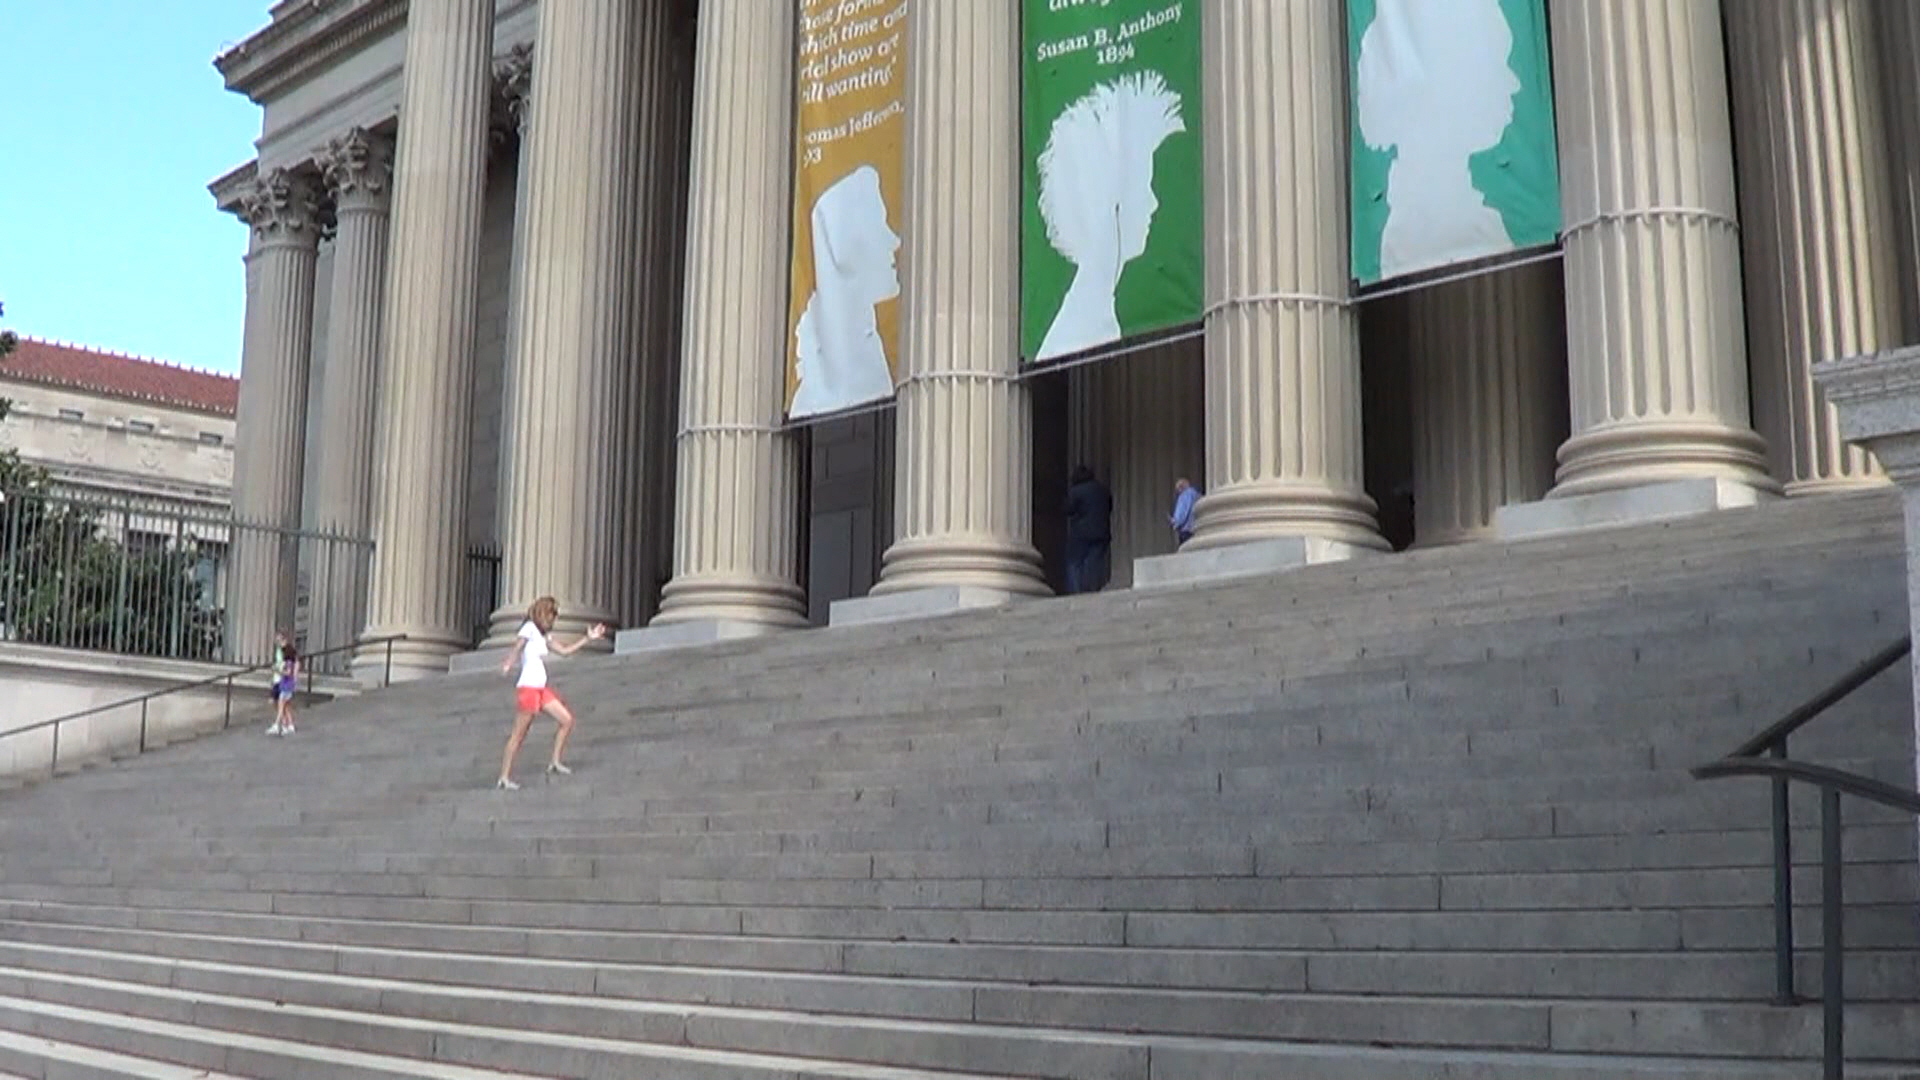 27 - National Archives Stairs